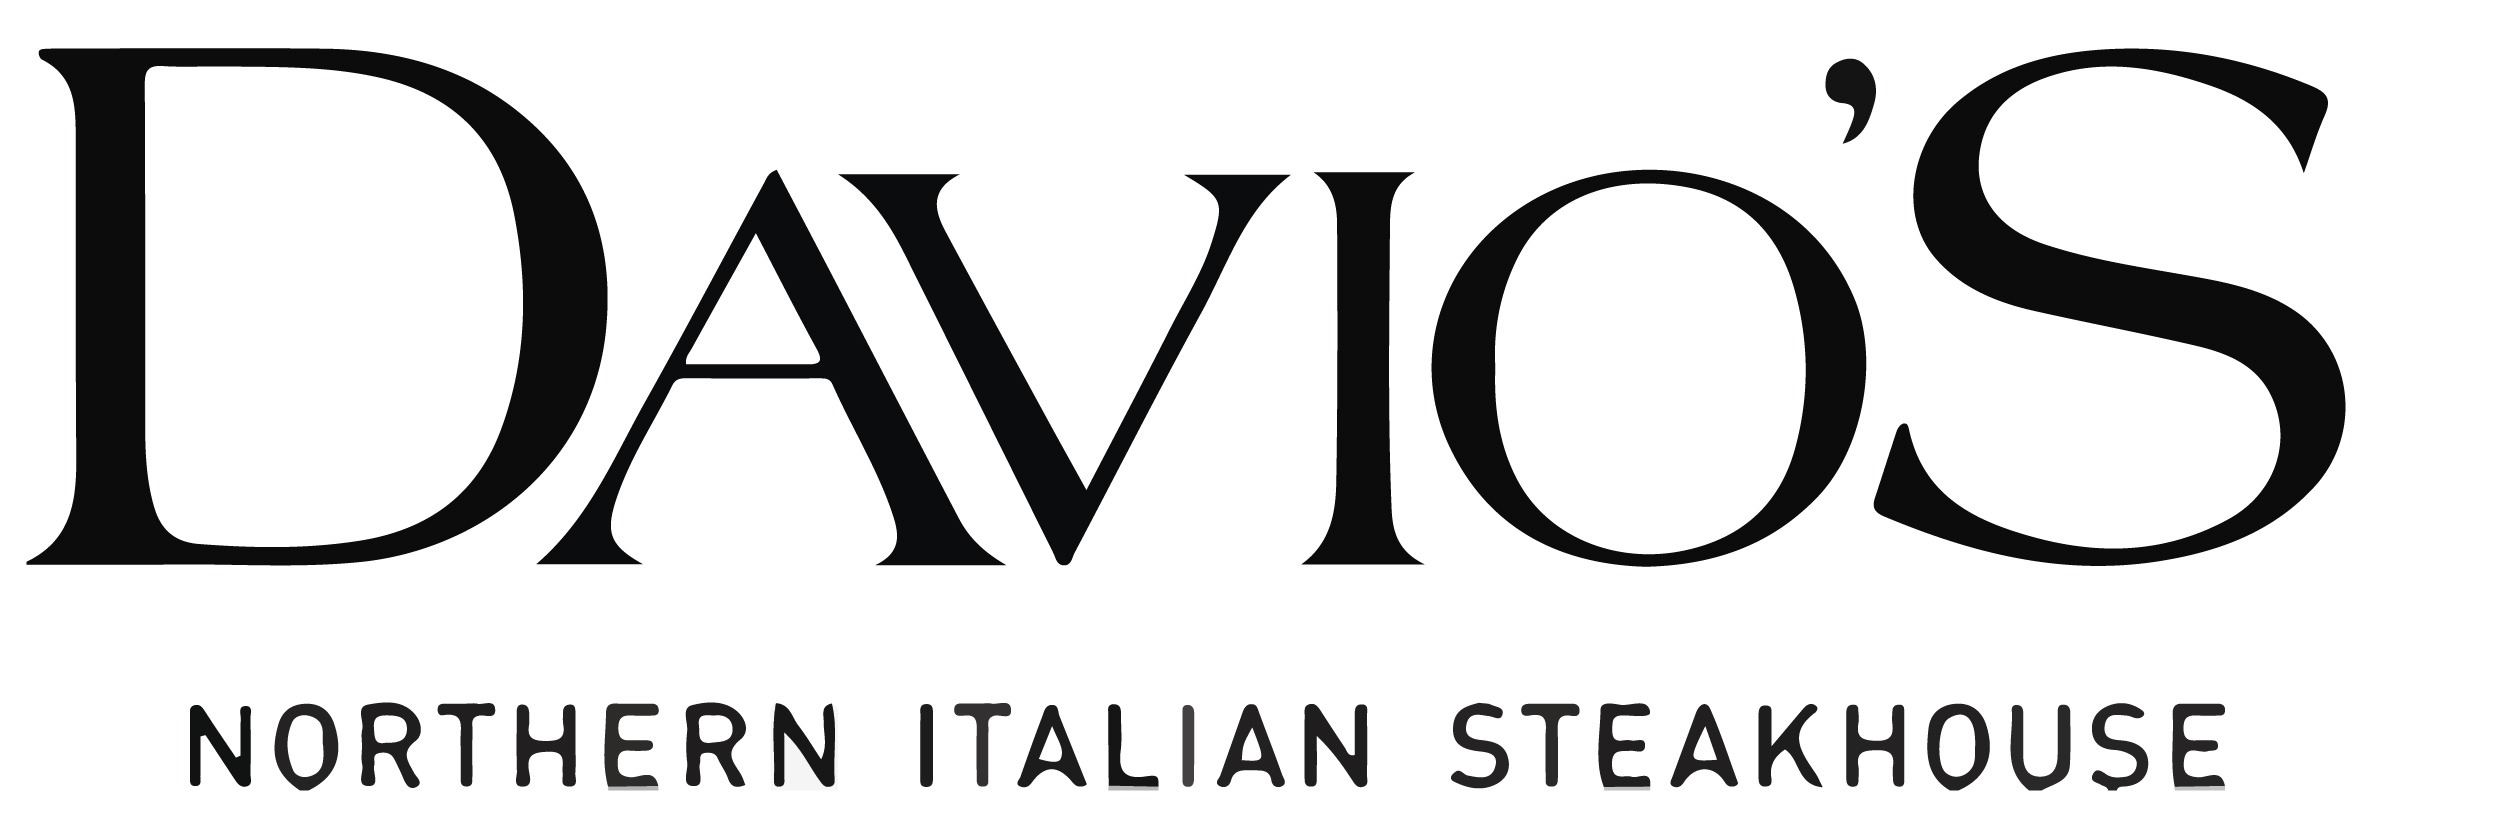 Davio's Northern Italian Steakhouse and other Retail Space at Patriot Place. Store Space Leasing available through Blackline Retail Group